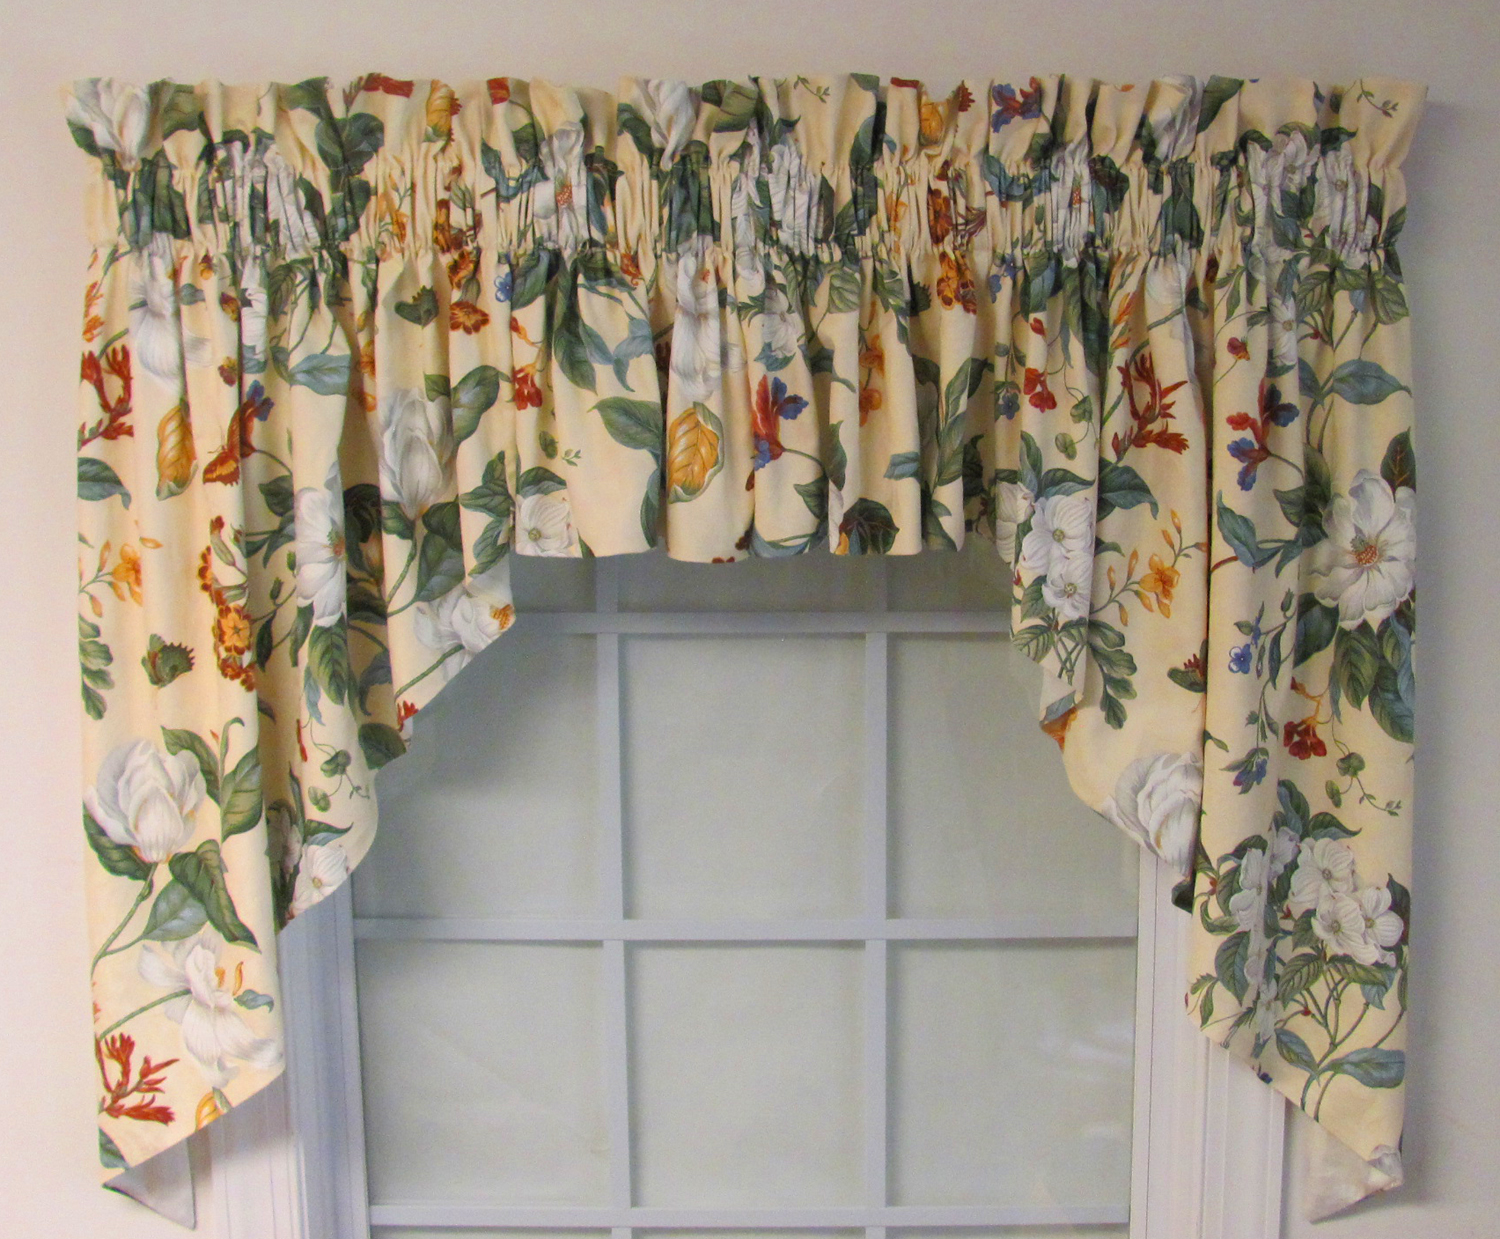 Mint Green Kitchen Curtains Valances Swags Window Toppers Thecurtainshop